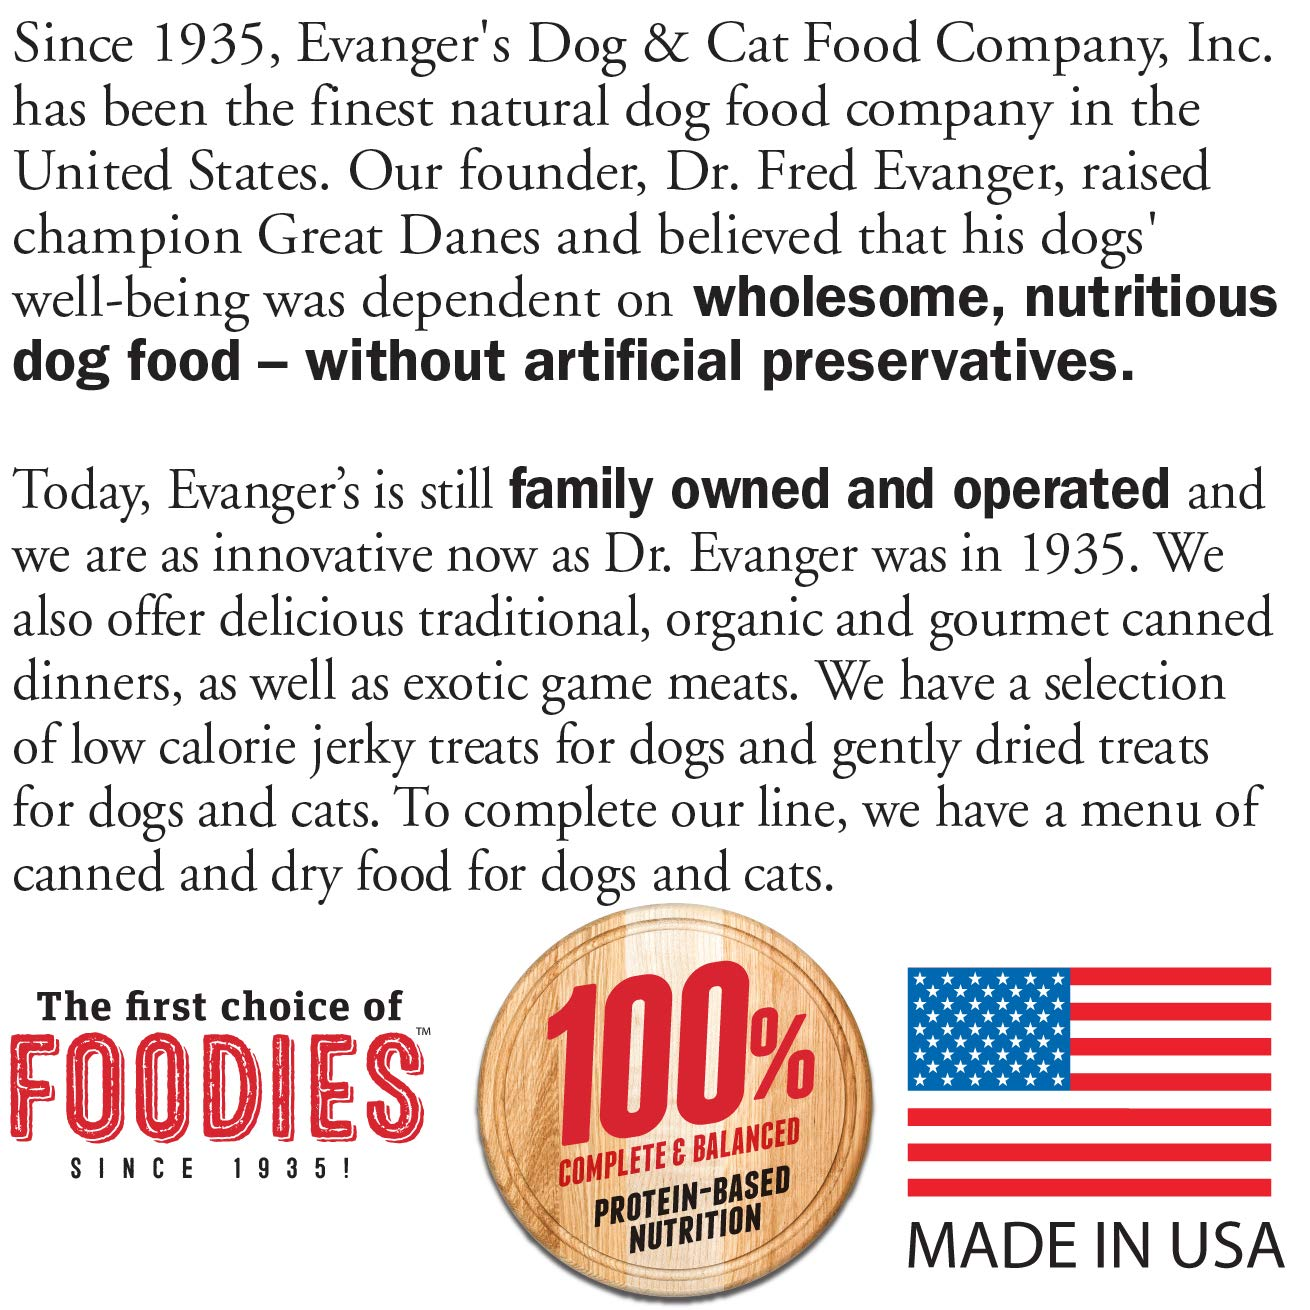 Evanger's Super Premium Gamebird Recipe with Coconut Oil Dry Food for Dogs, 33# by Evanger's Dog & Cat Food Company, Inc.